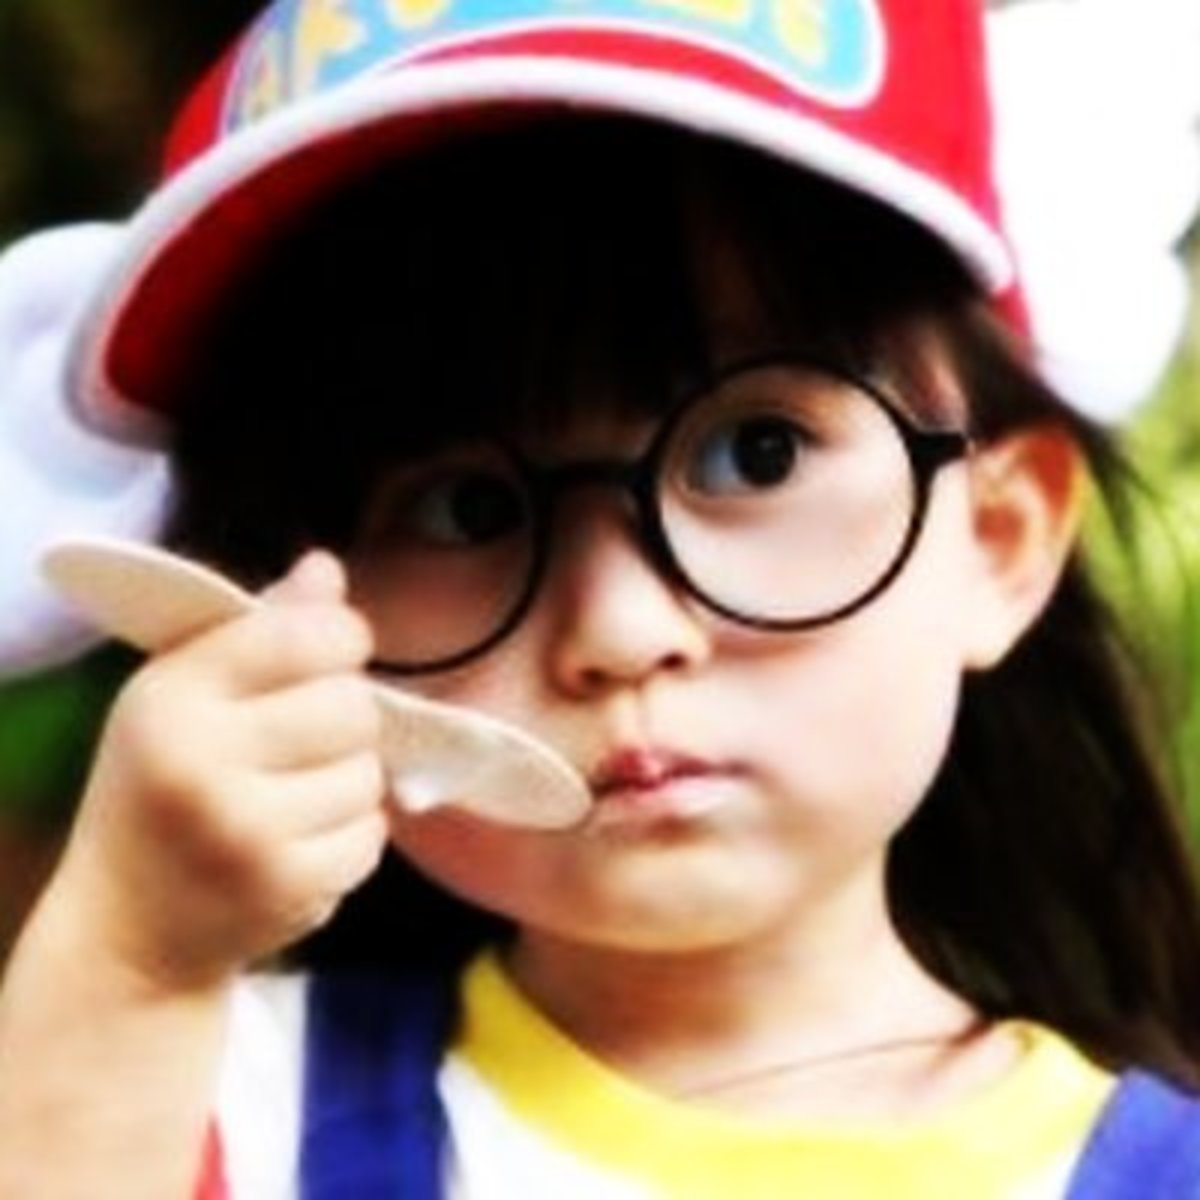 Arale-chan costumes can be homemade or purchased. Glasses and a winged hat are the main accessories.